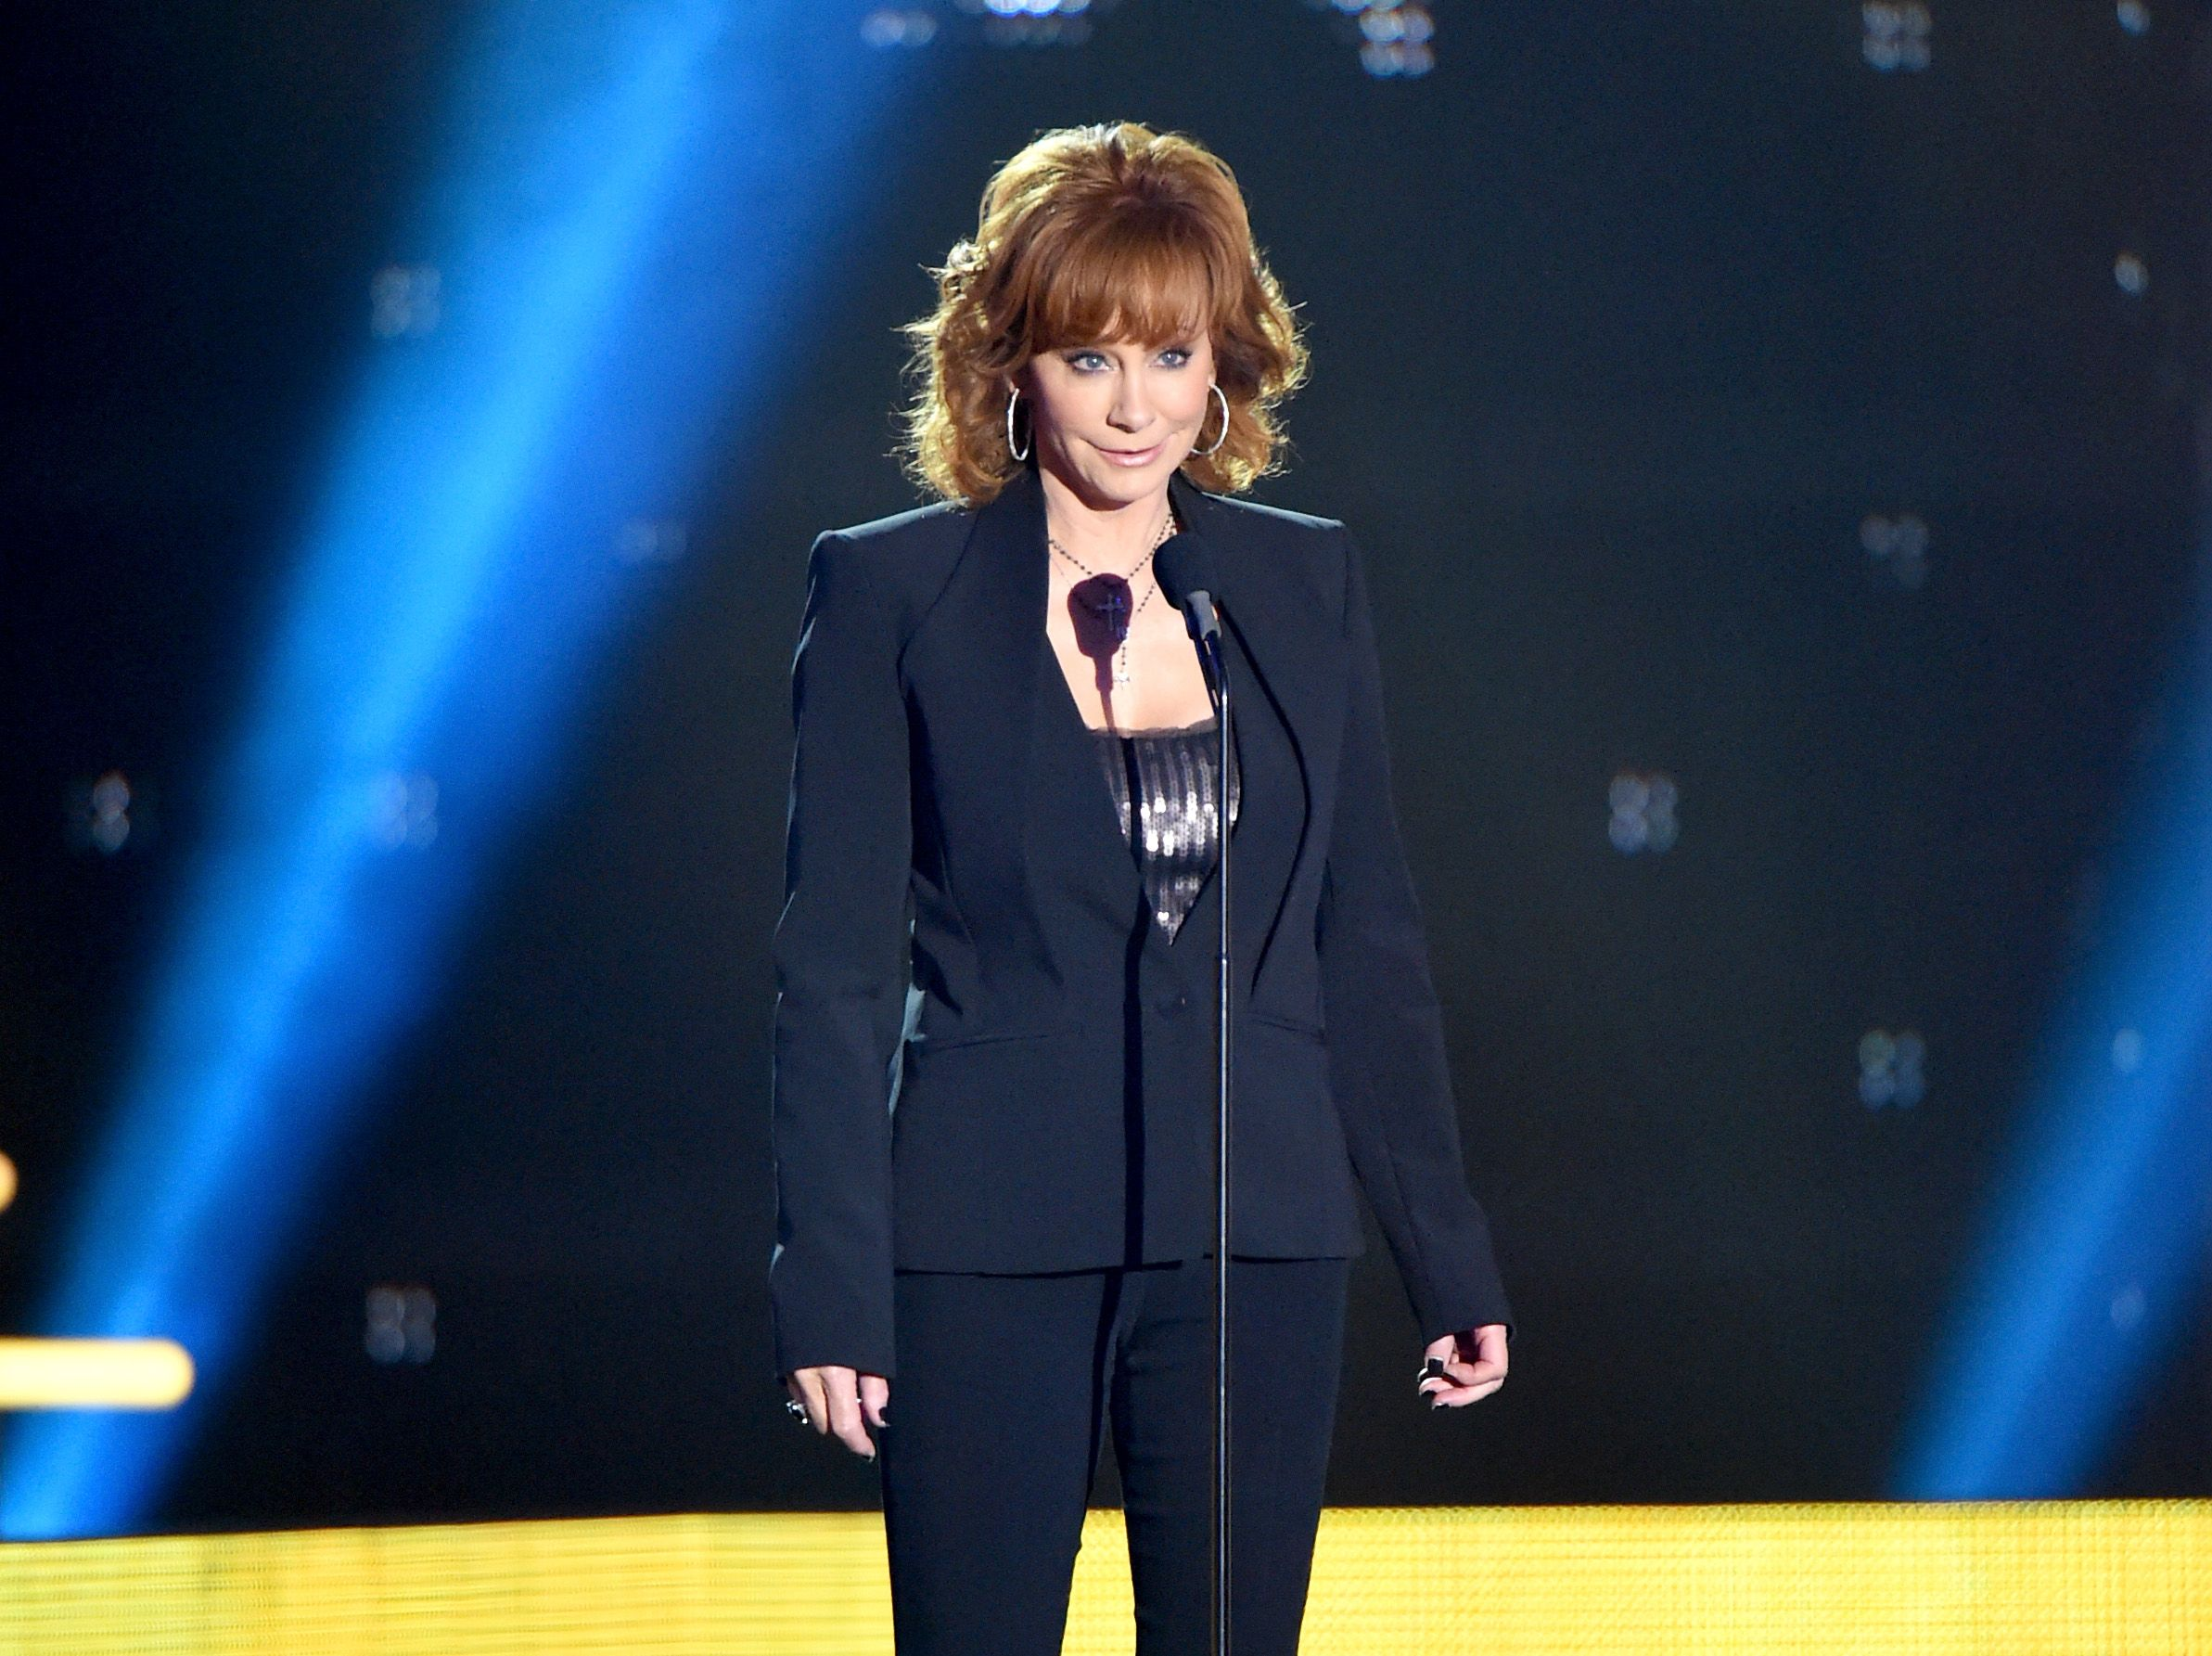 Reba McEntire Honors Late Band Members Who Died in a Tragic Plane Crash 28 Years Ago